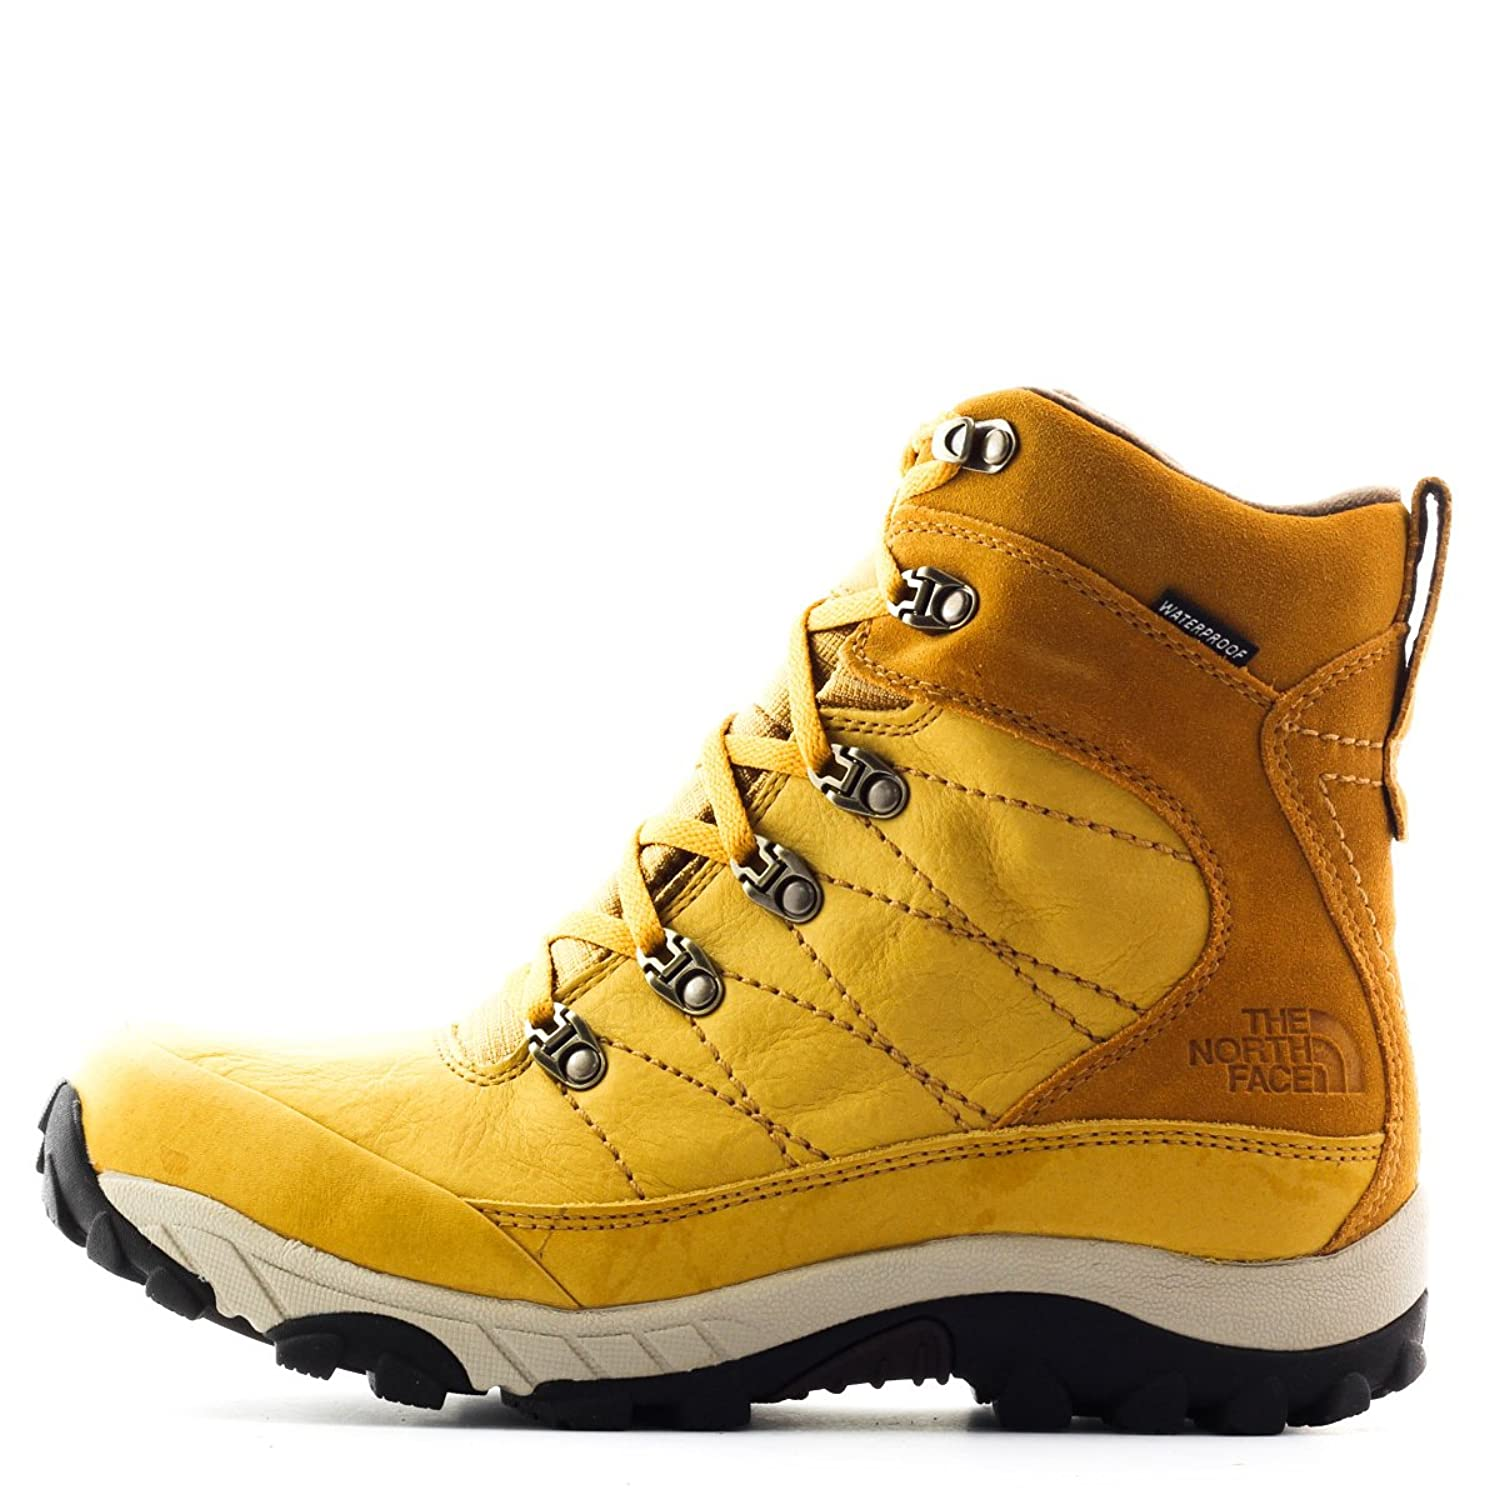 The North Face MEN M CHILKAT LEATHER SPUCE YELLOW 10 SNEAKERS